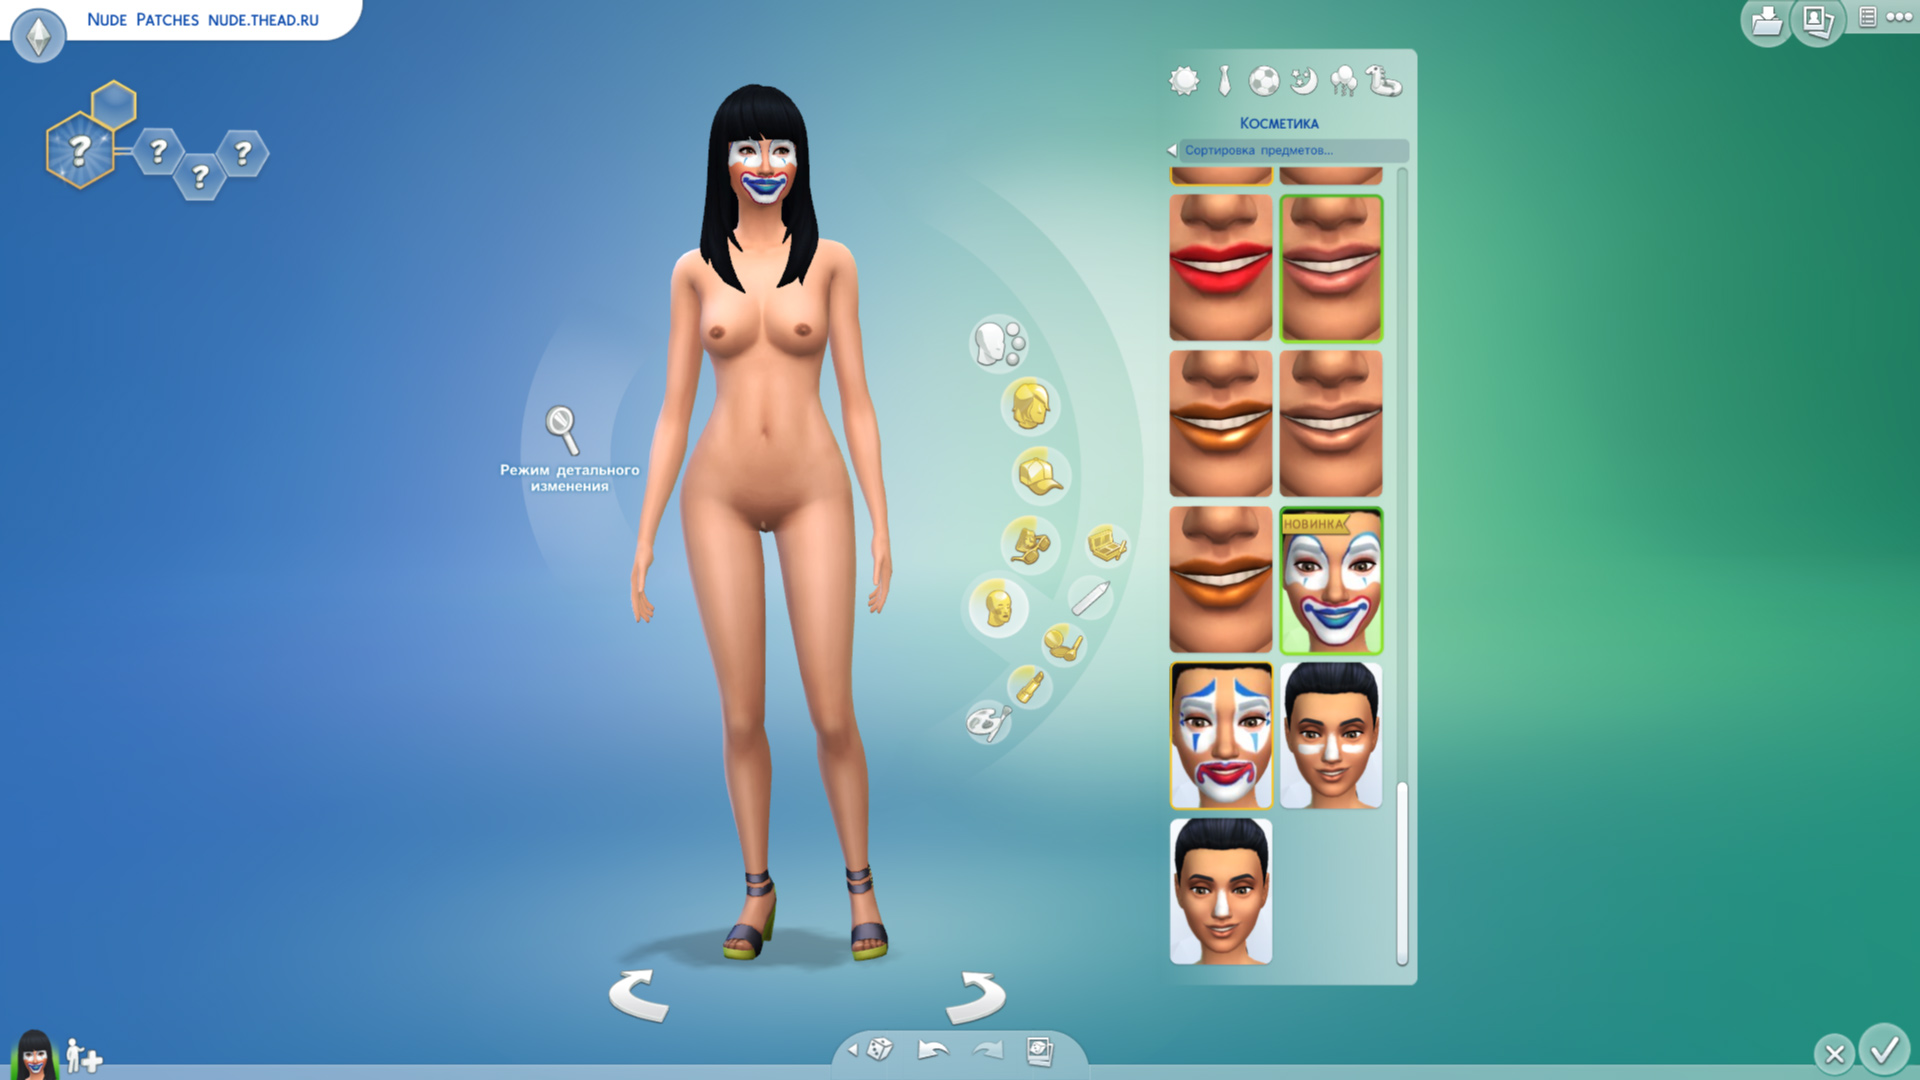 Nude mod do the sims 4 naked picture